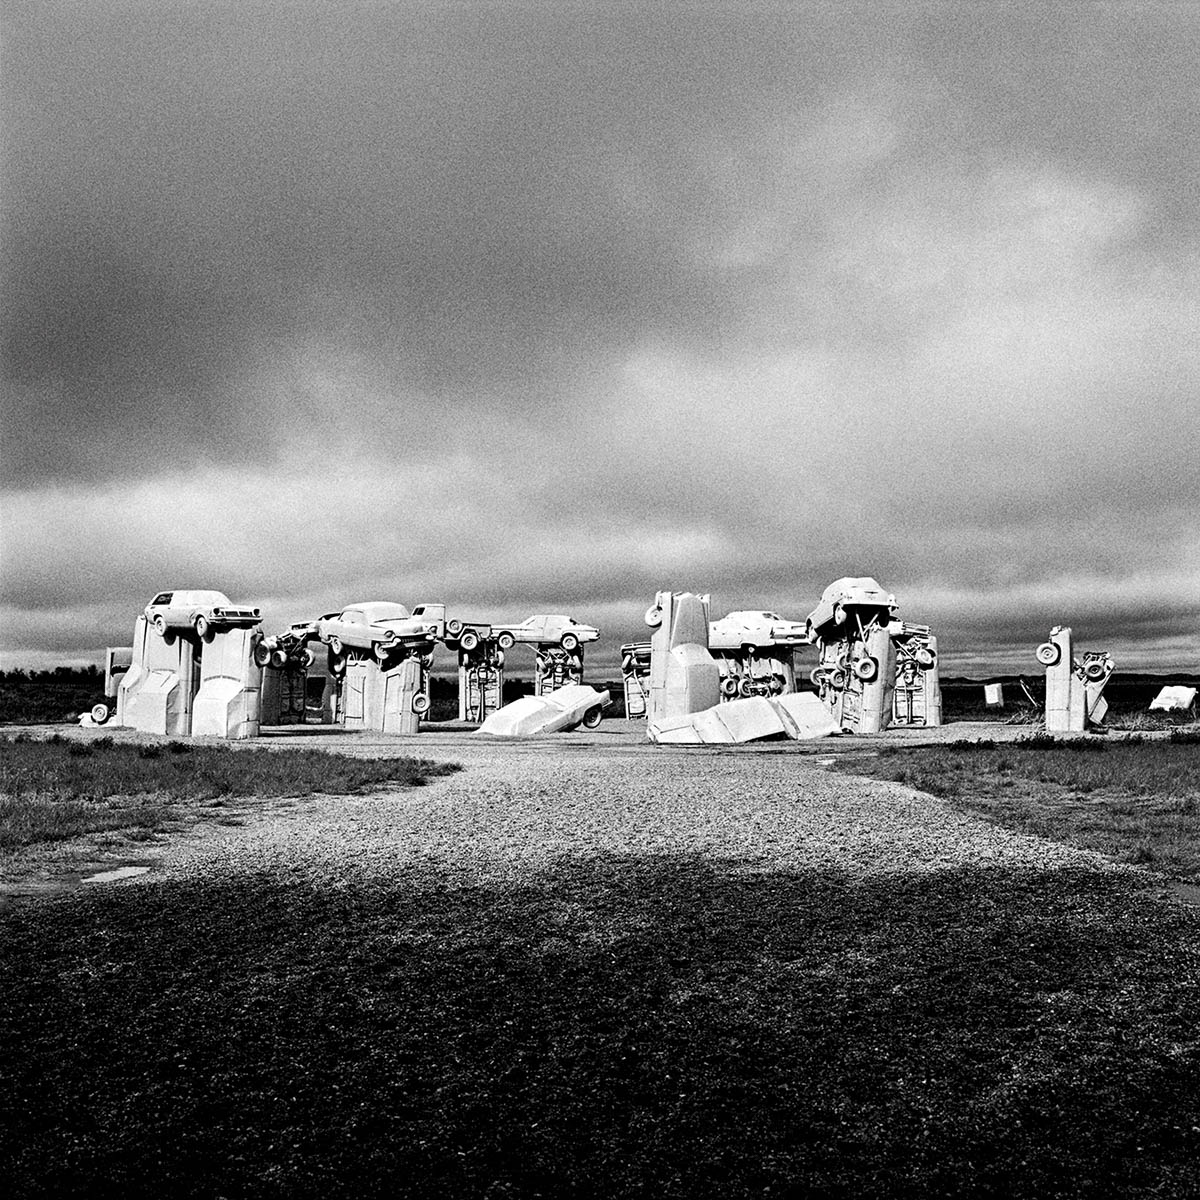 Carhenge near Alliance, Nebraska, 1997